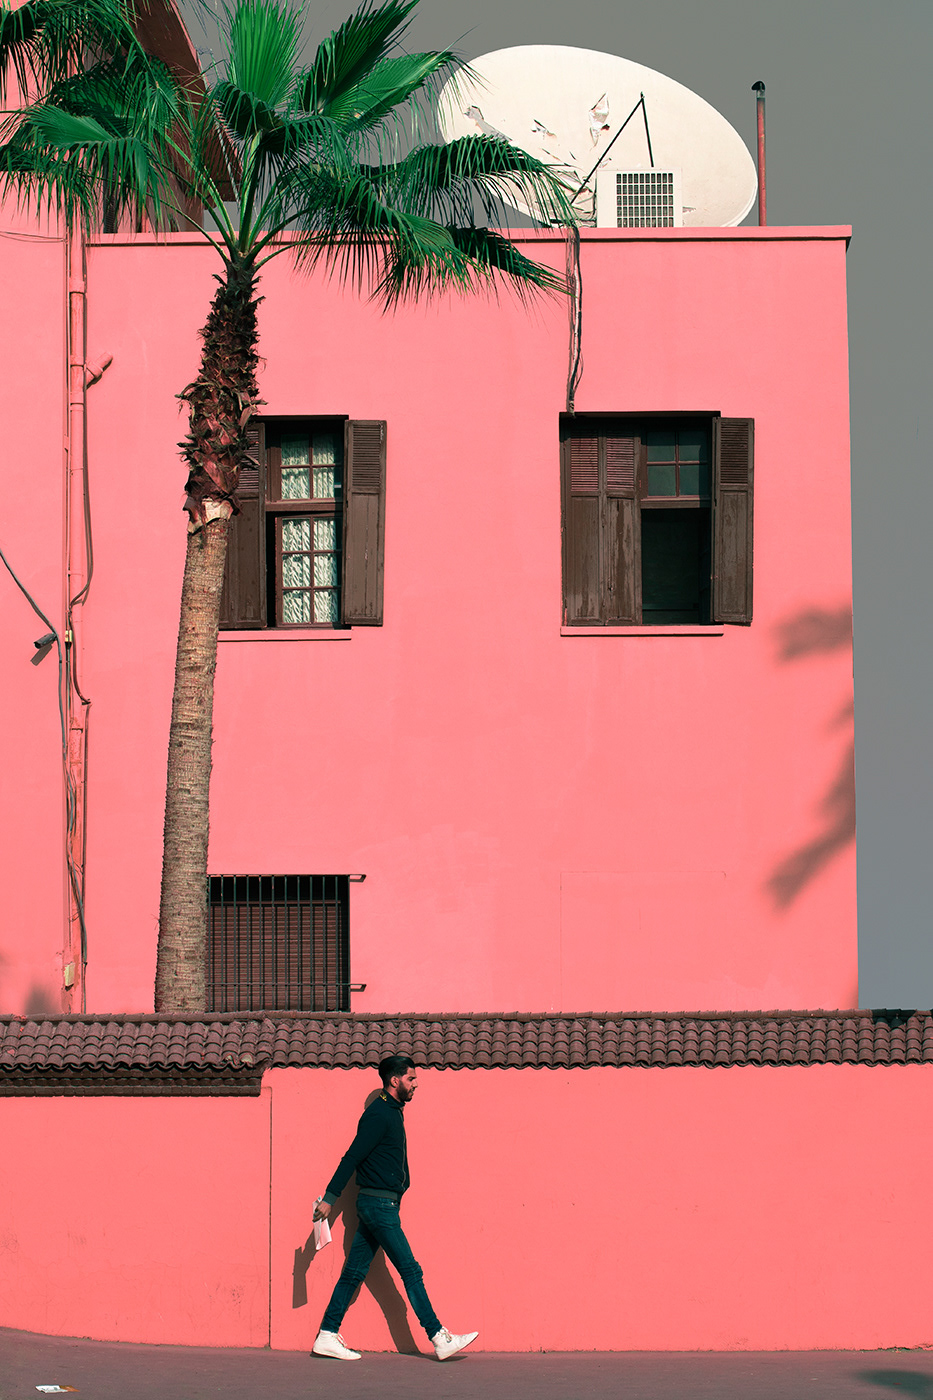 minimal street photography People Photography colorful simplicity afternoon pink fine art art photography atmospheric